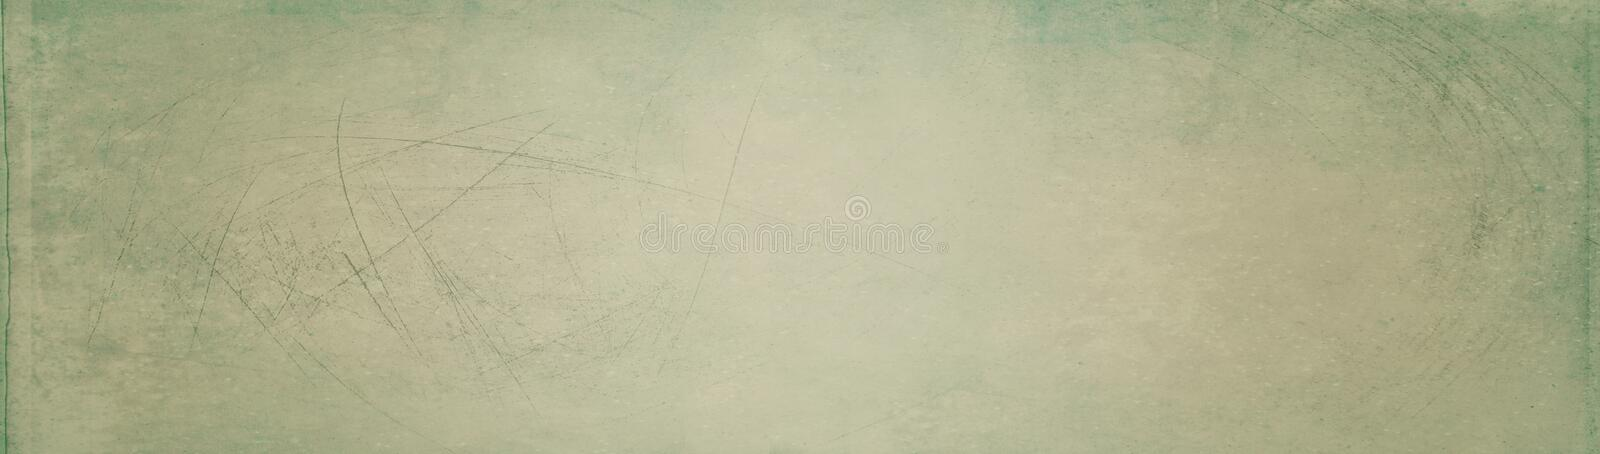 Banner with vintage background - web header template - website design - simple design royalty free stock image